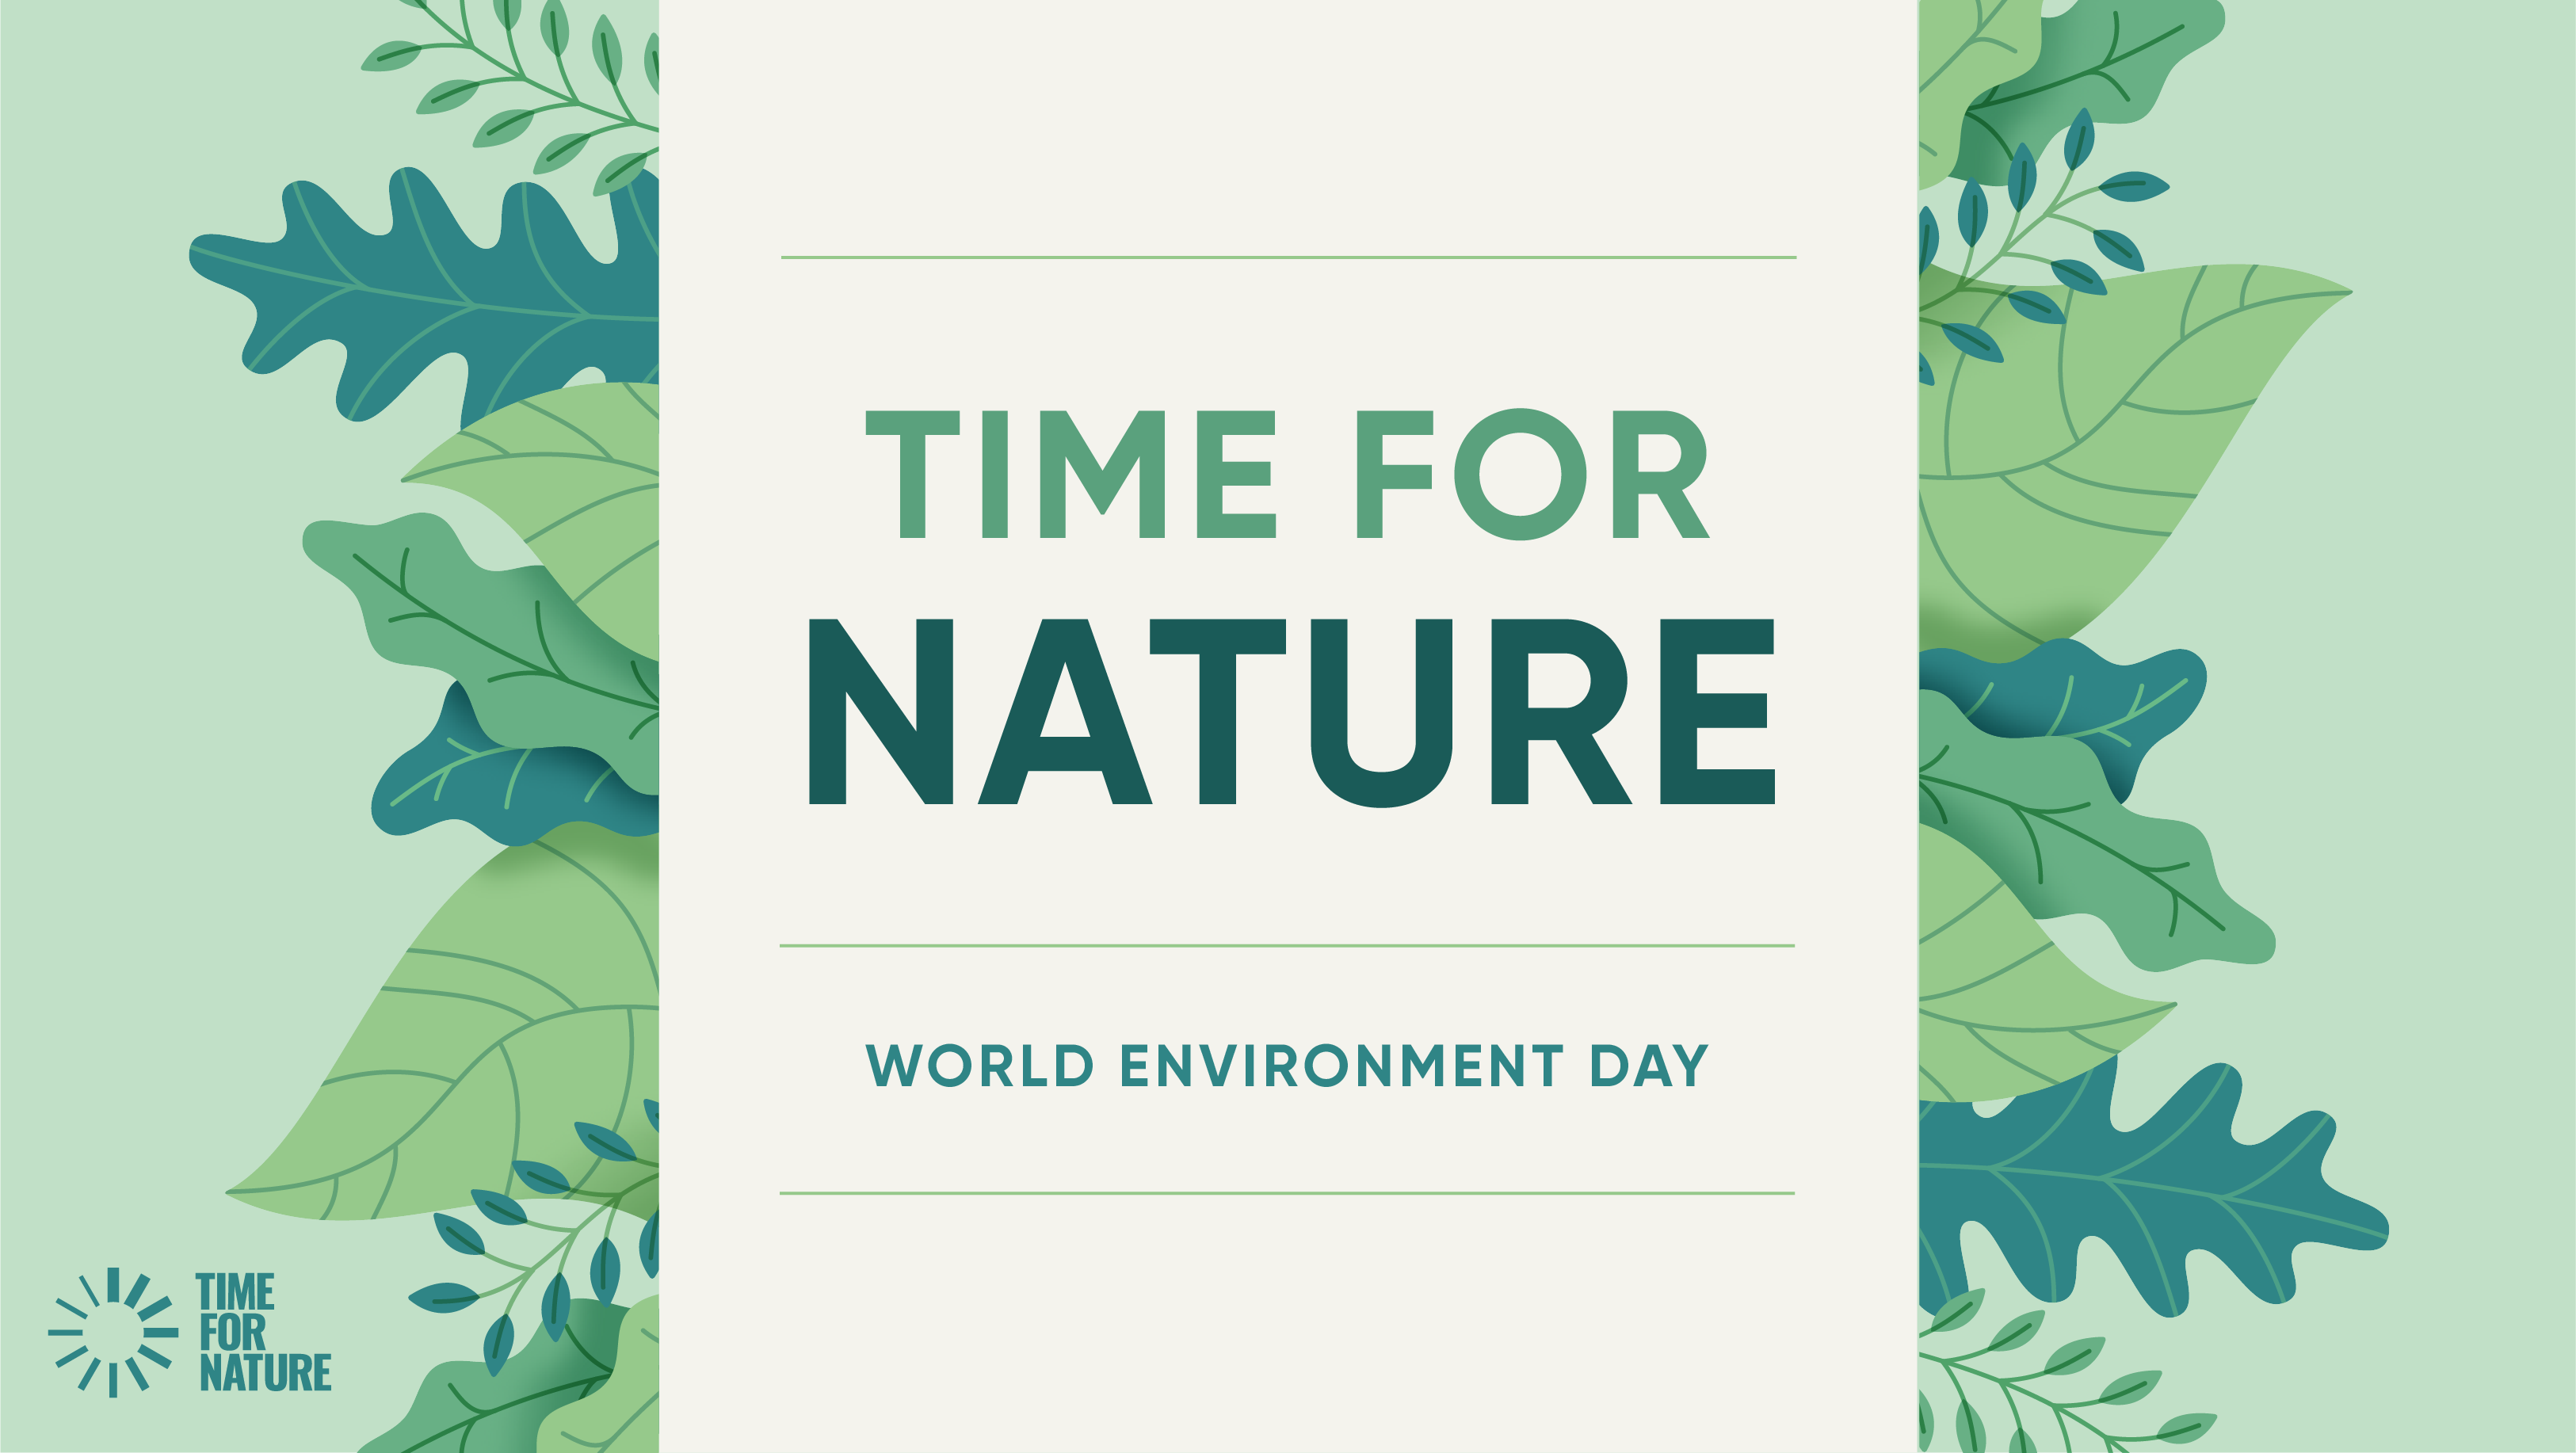 3 simple things companies should do to make more time for nature this 2020 World Environment Day